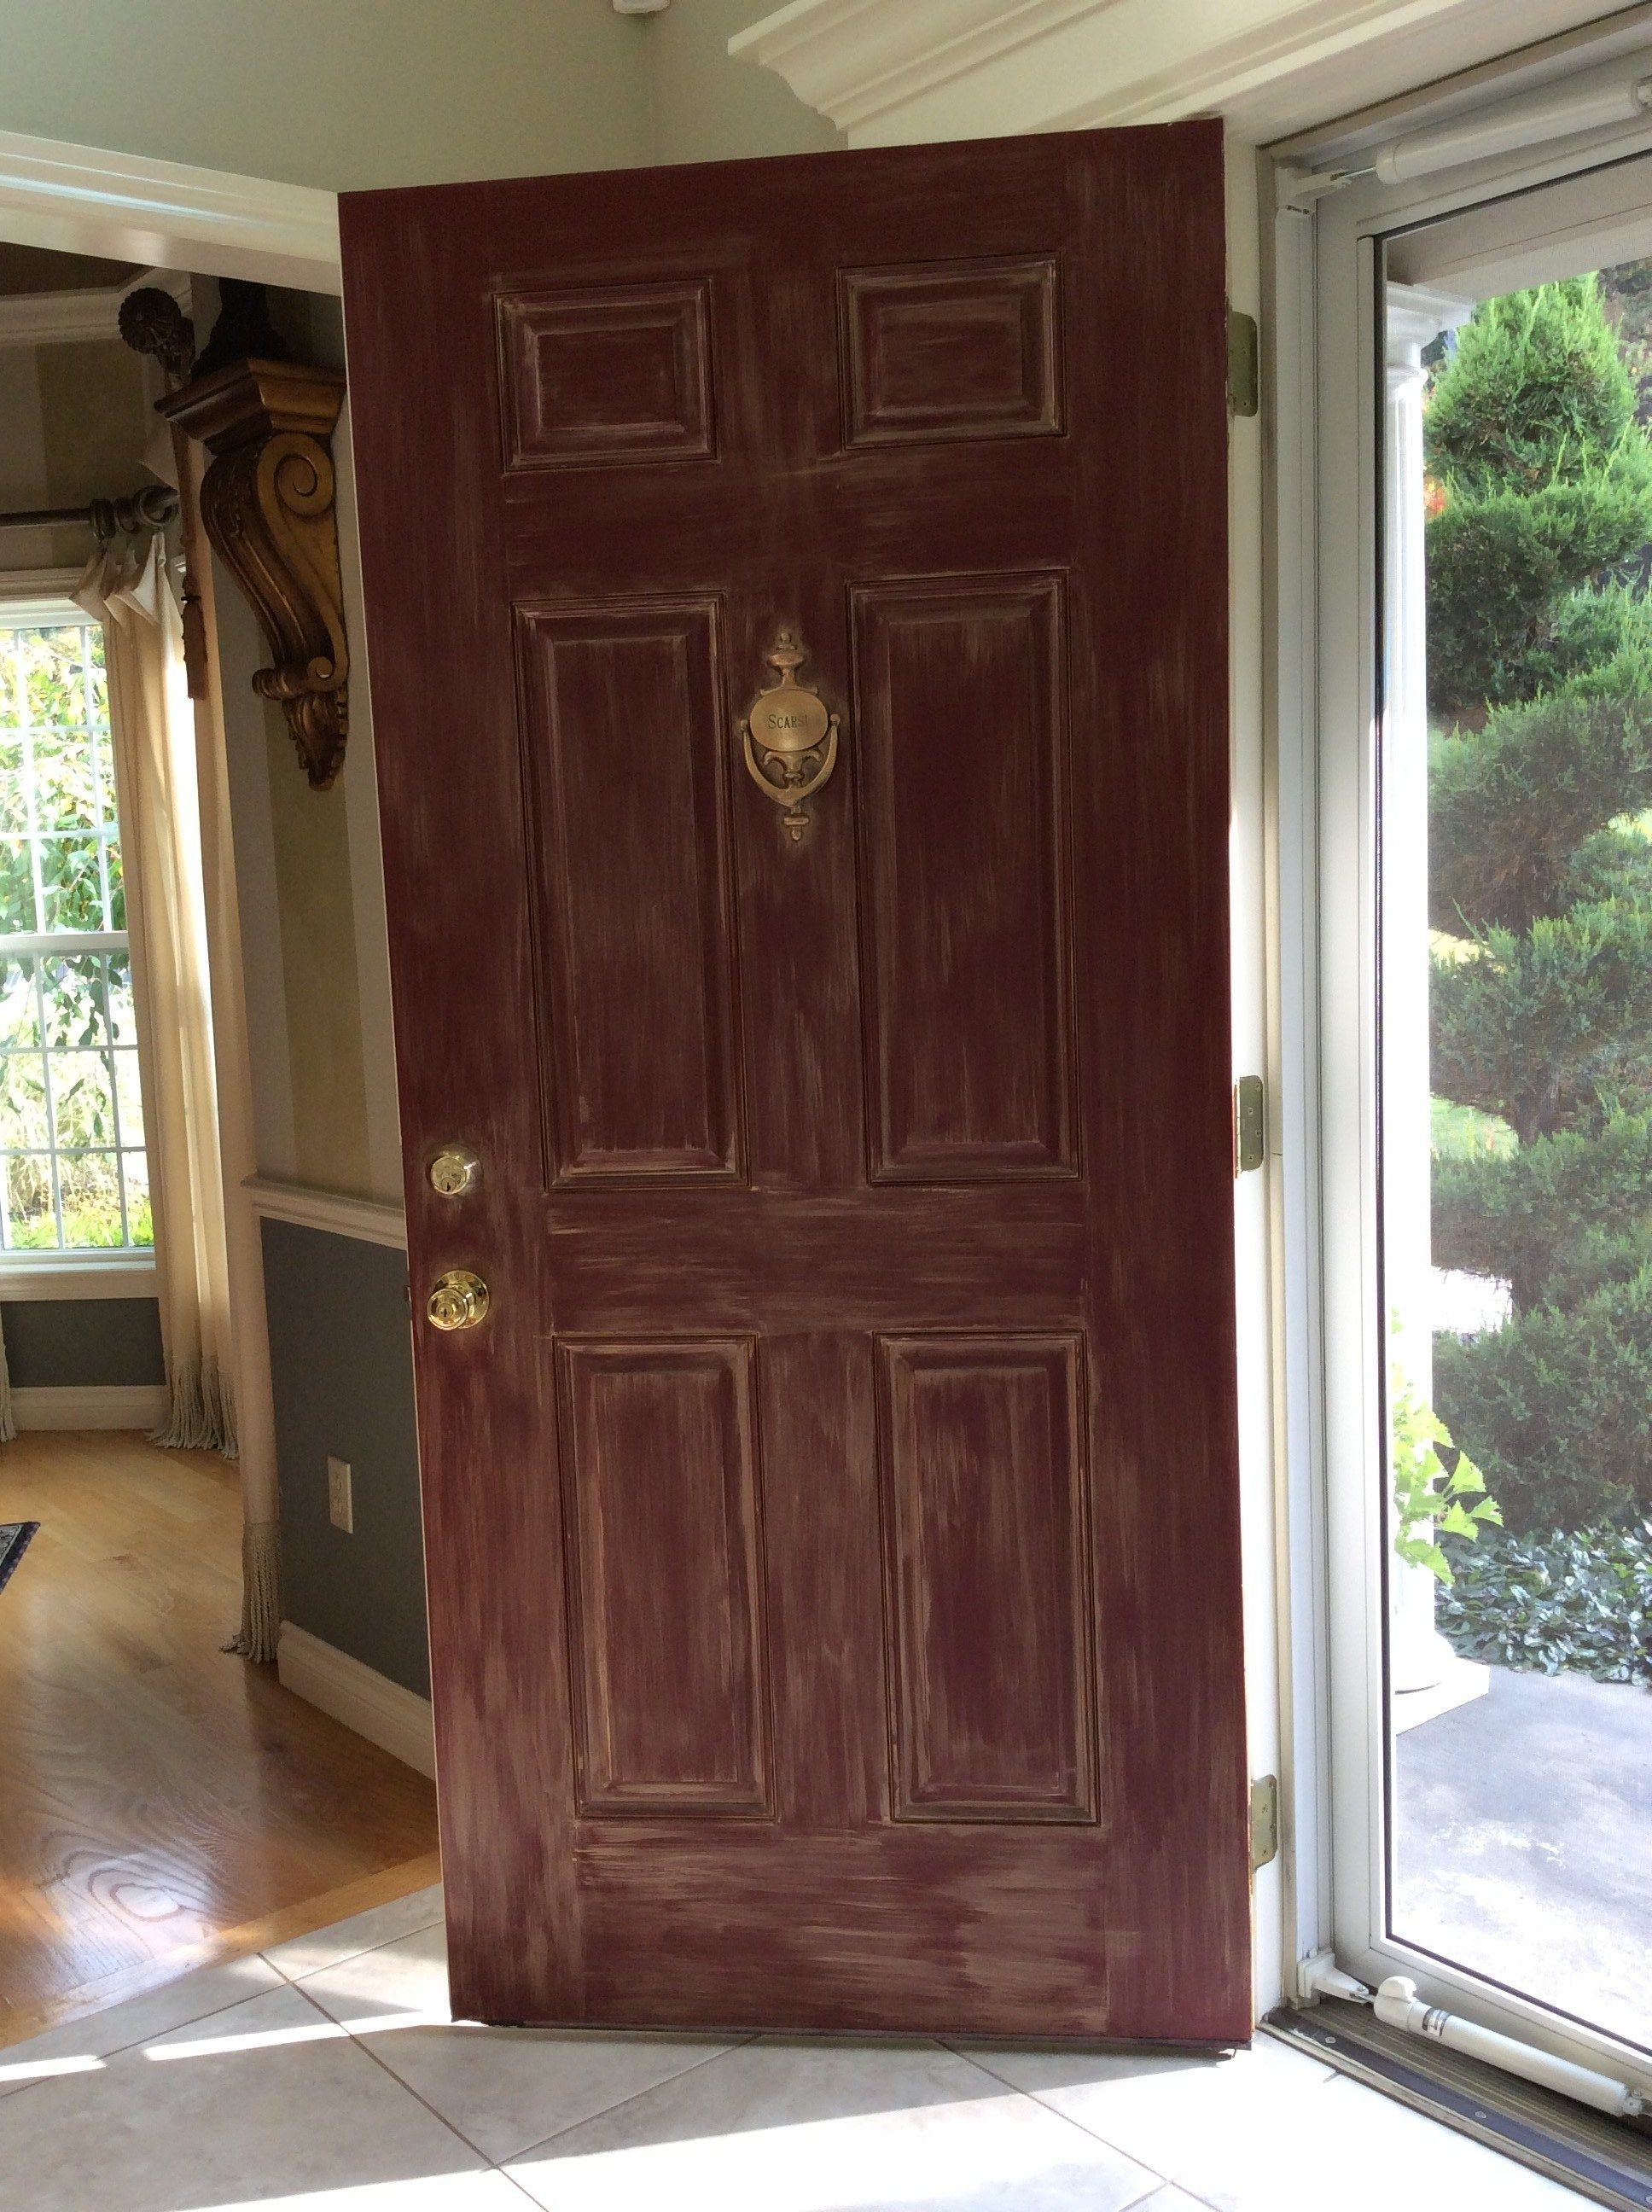 Designer Amys Awesome Diy Front Door Remodel Houseofbrightideas